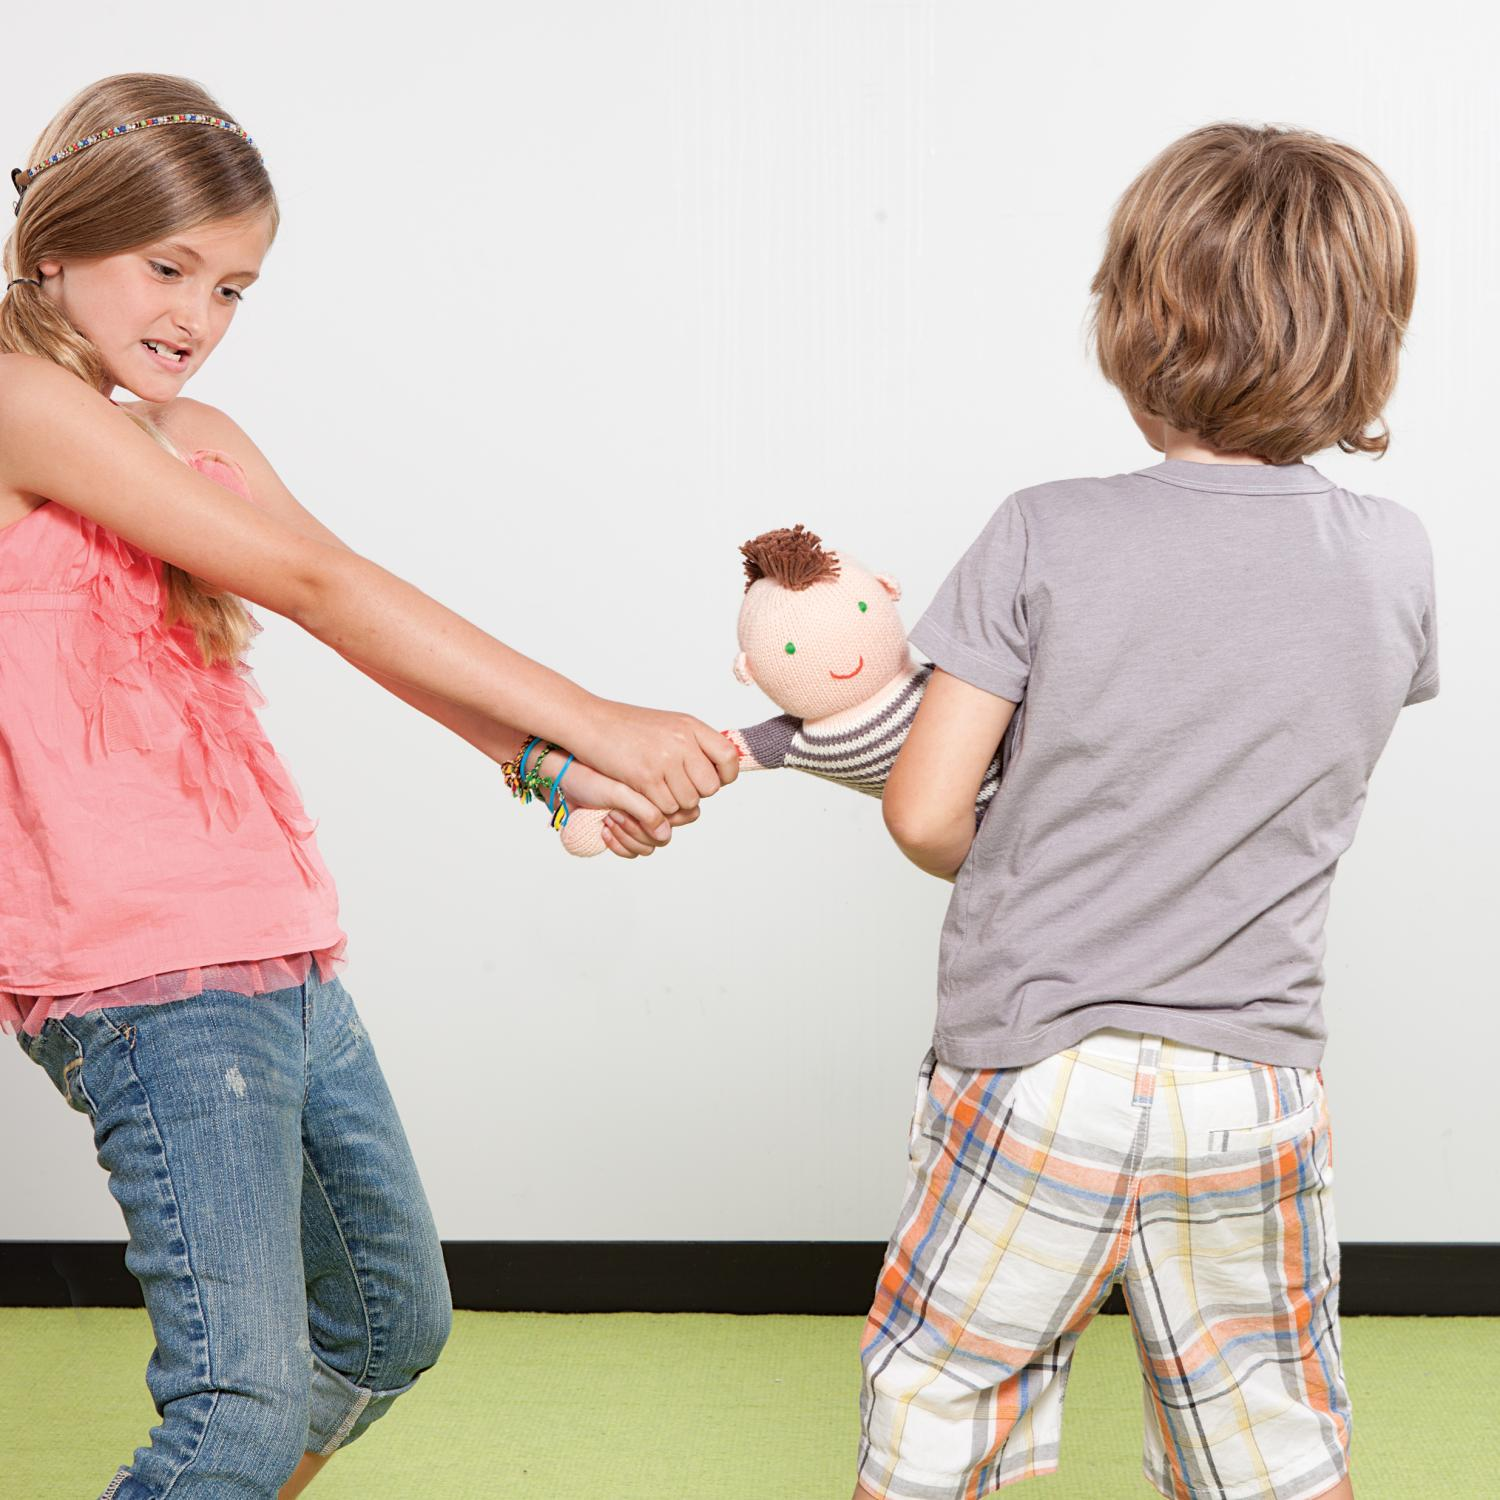 Toys For Siblings : Dealing with sibling rivalry parenting